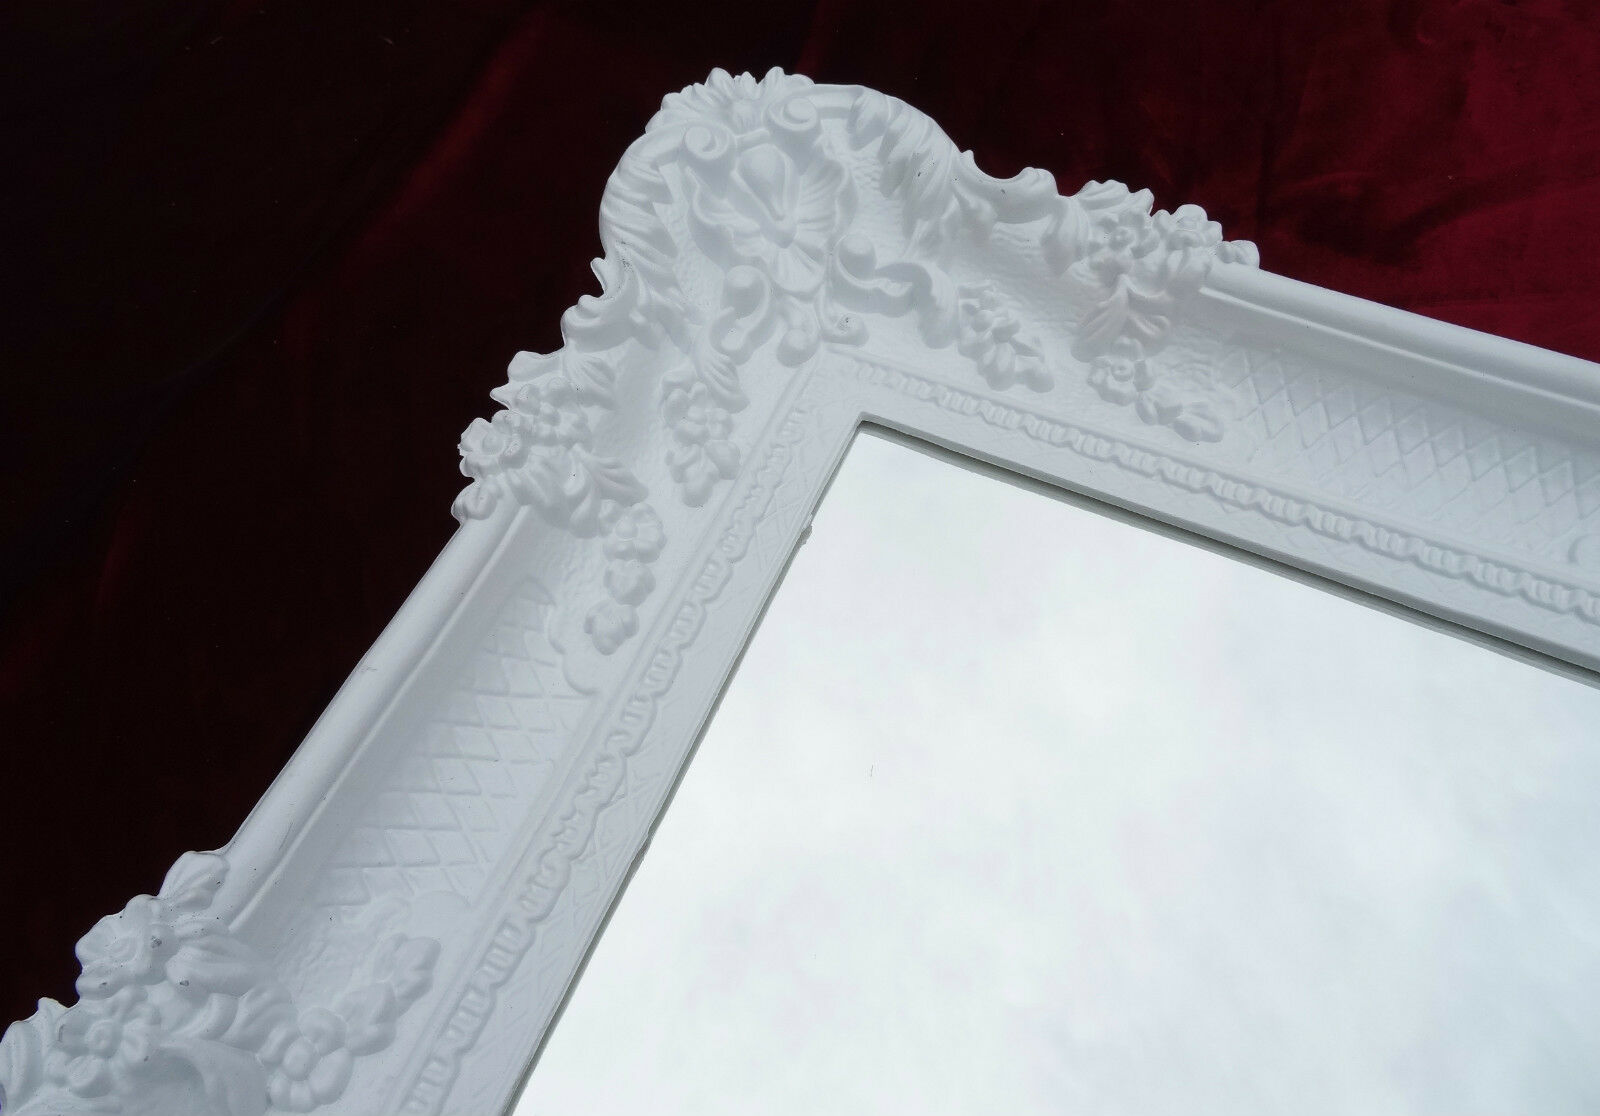 xxl wall mirror white 96x57 antique baroque shabby chic floor make up ebay. Black Bedroom Furniture Sets. Home Design Ideas